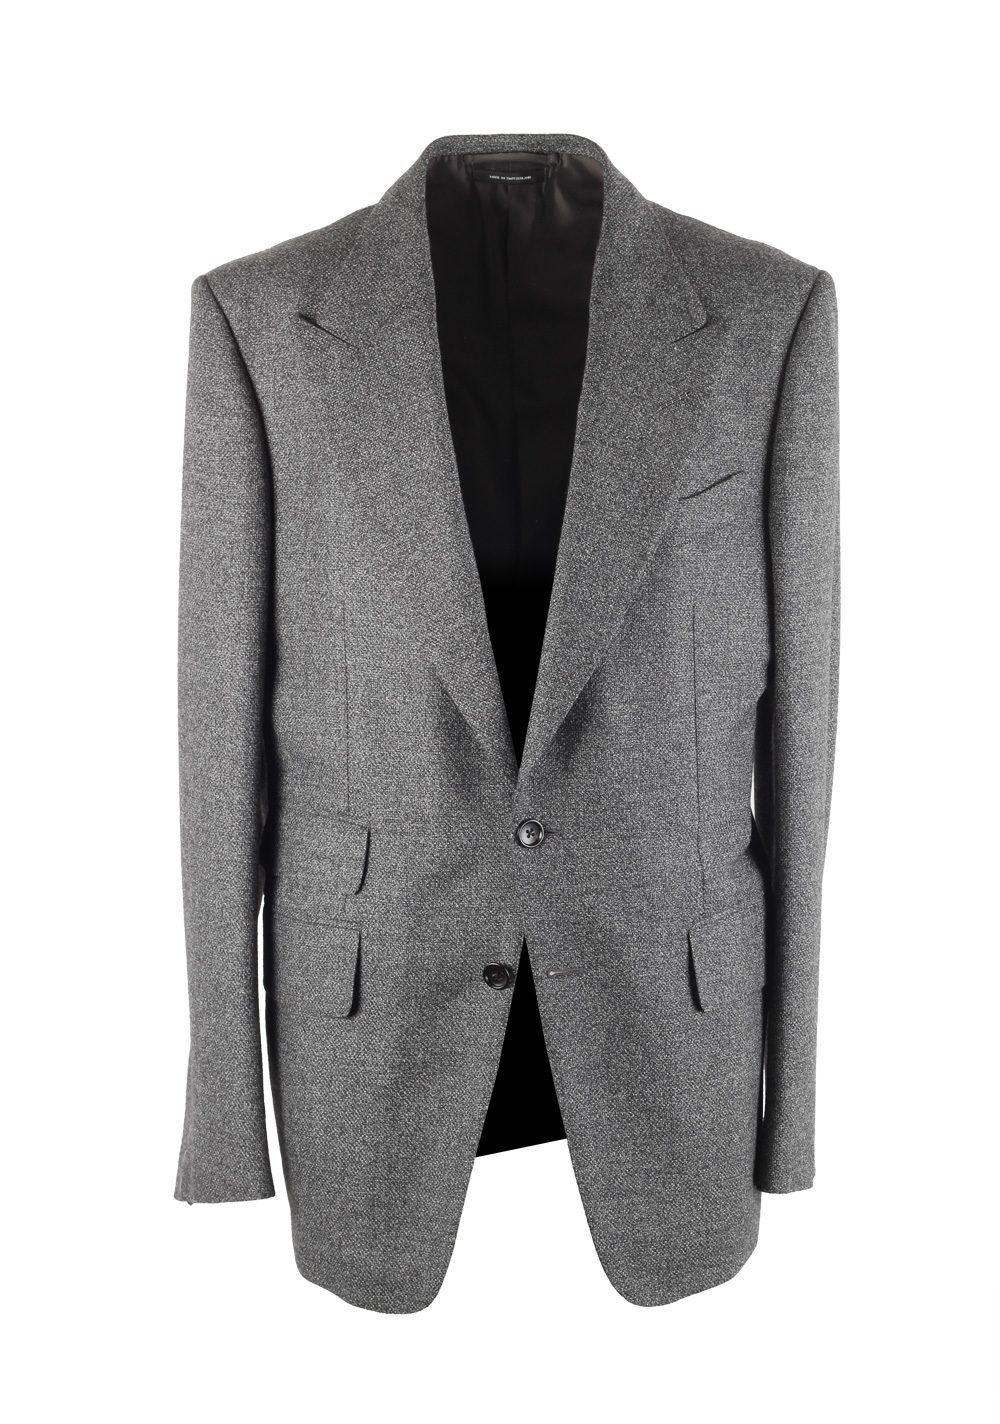 TOM FORD Shelton Gray Sport Coat Size 50 / 40R U.S. In Wool | Costume Limité